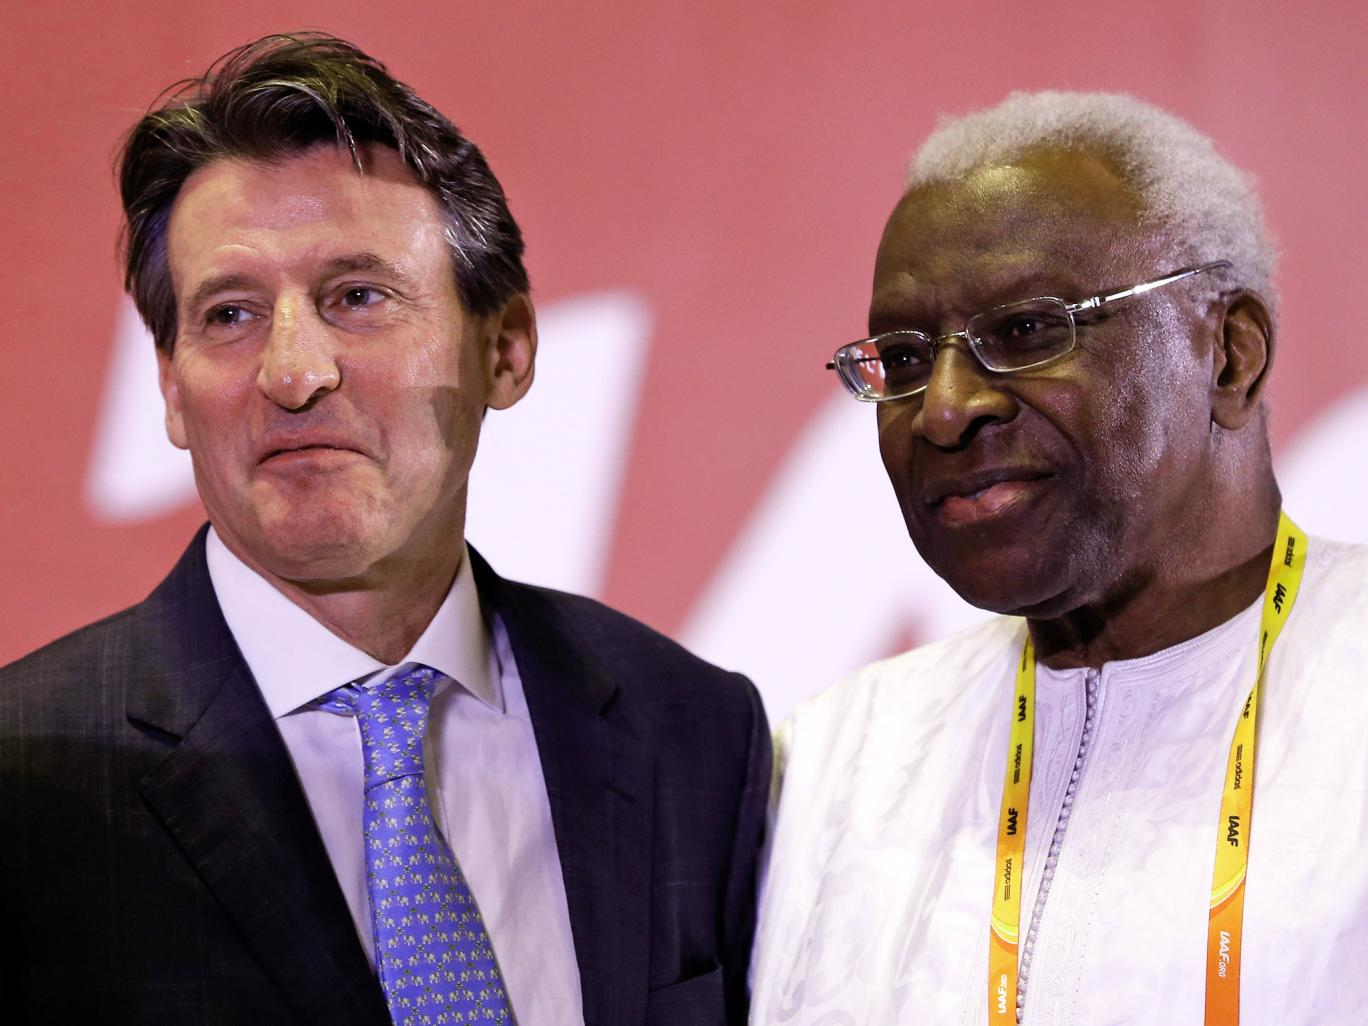 Don't Allow Russia to be the Scapegoat in the Current Doping Scandal When the Real Villain is the IAAF